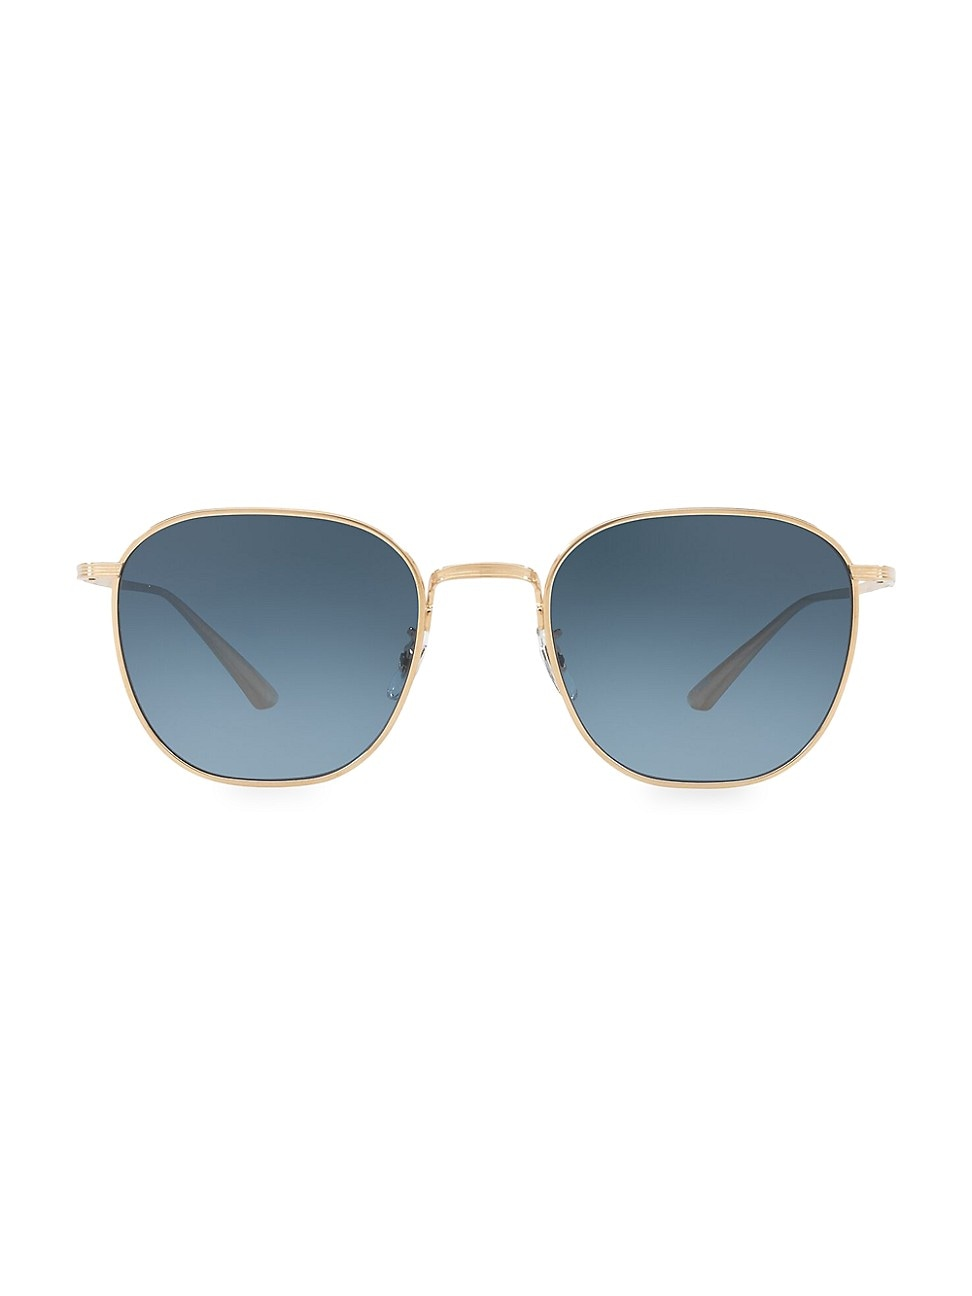 Oliver Peoples WOMEN'S BOARD MEETING 49MM SQUARE SUNGLASSES